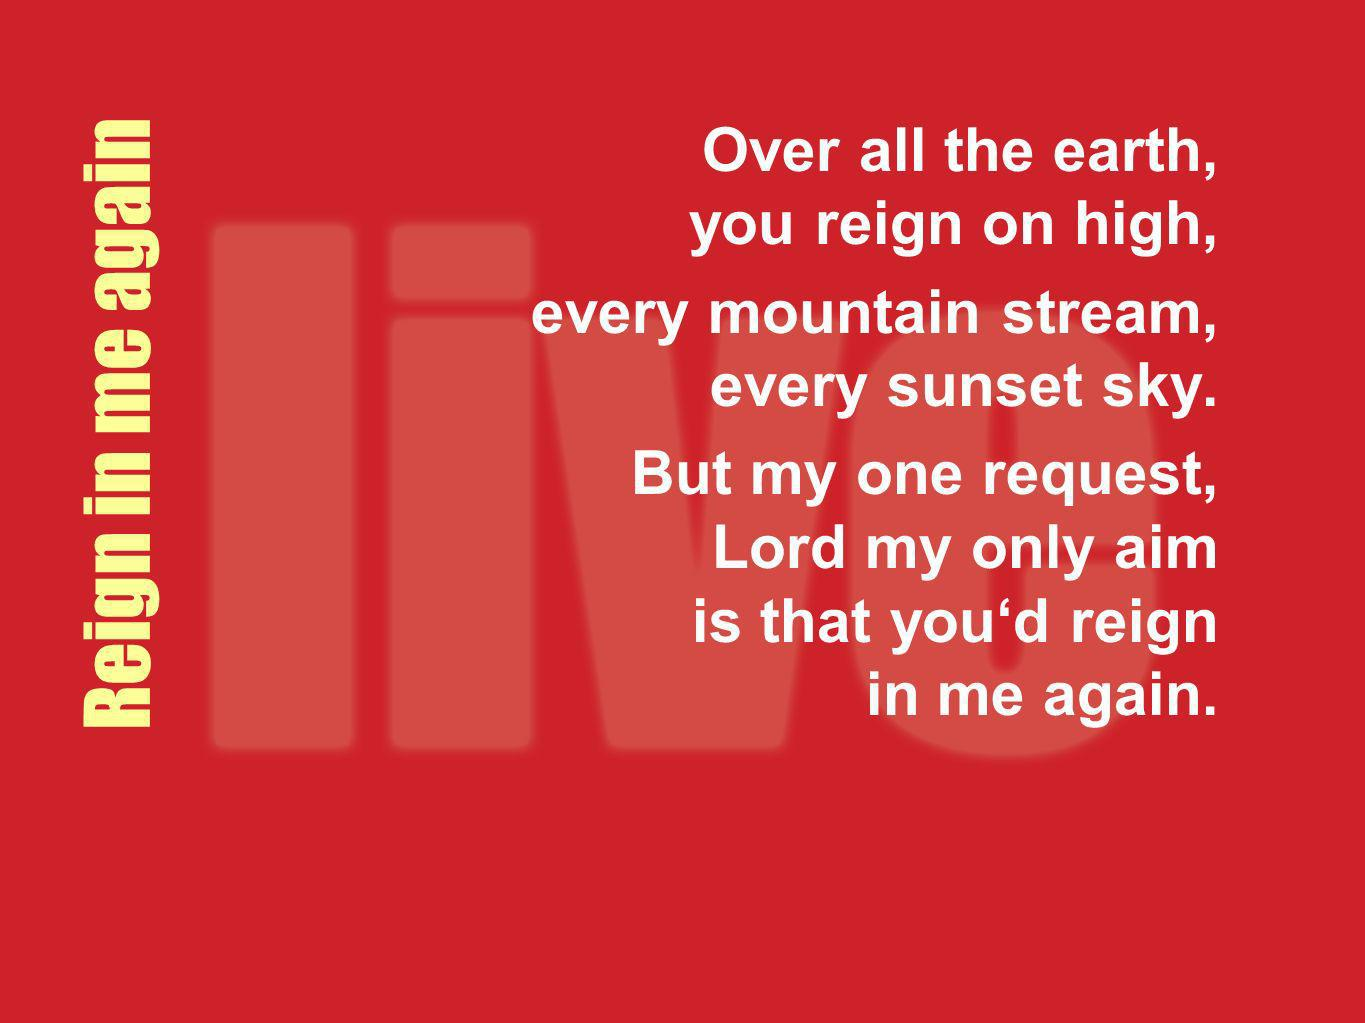 Reign in me again Lord reign in me, reign in your powr; over all my dreams, in my darkest hour.